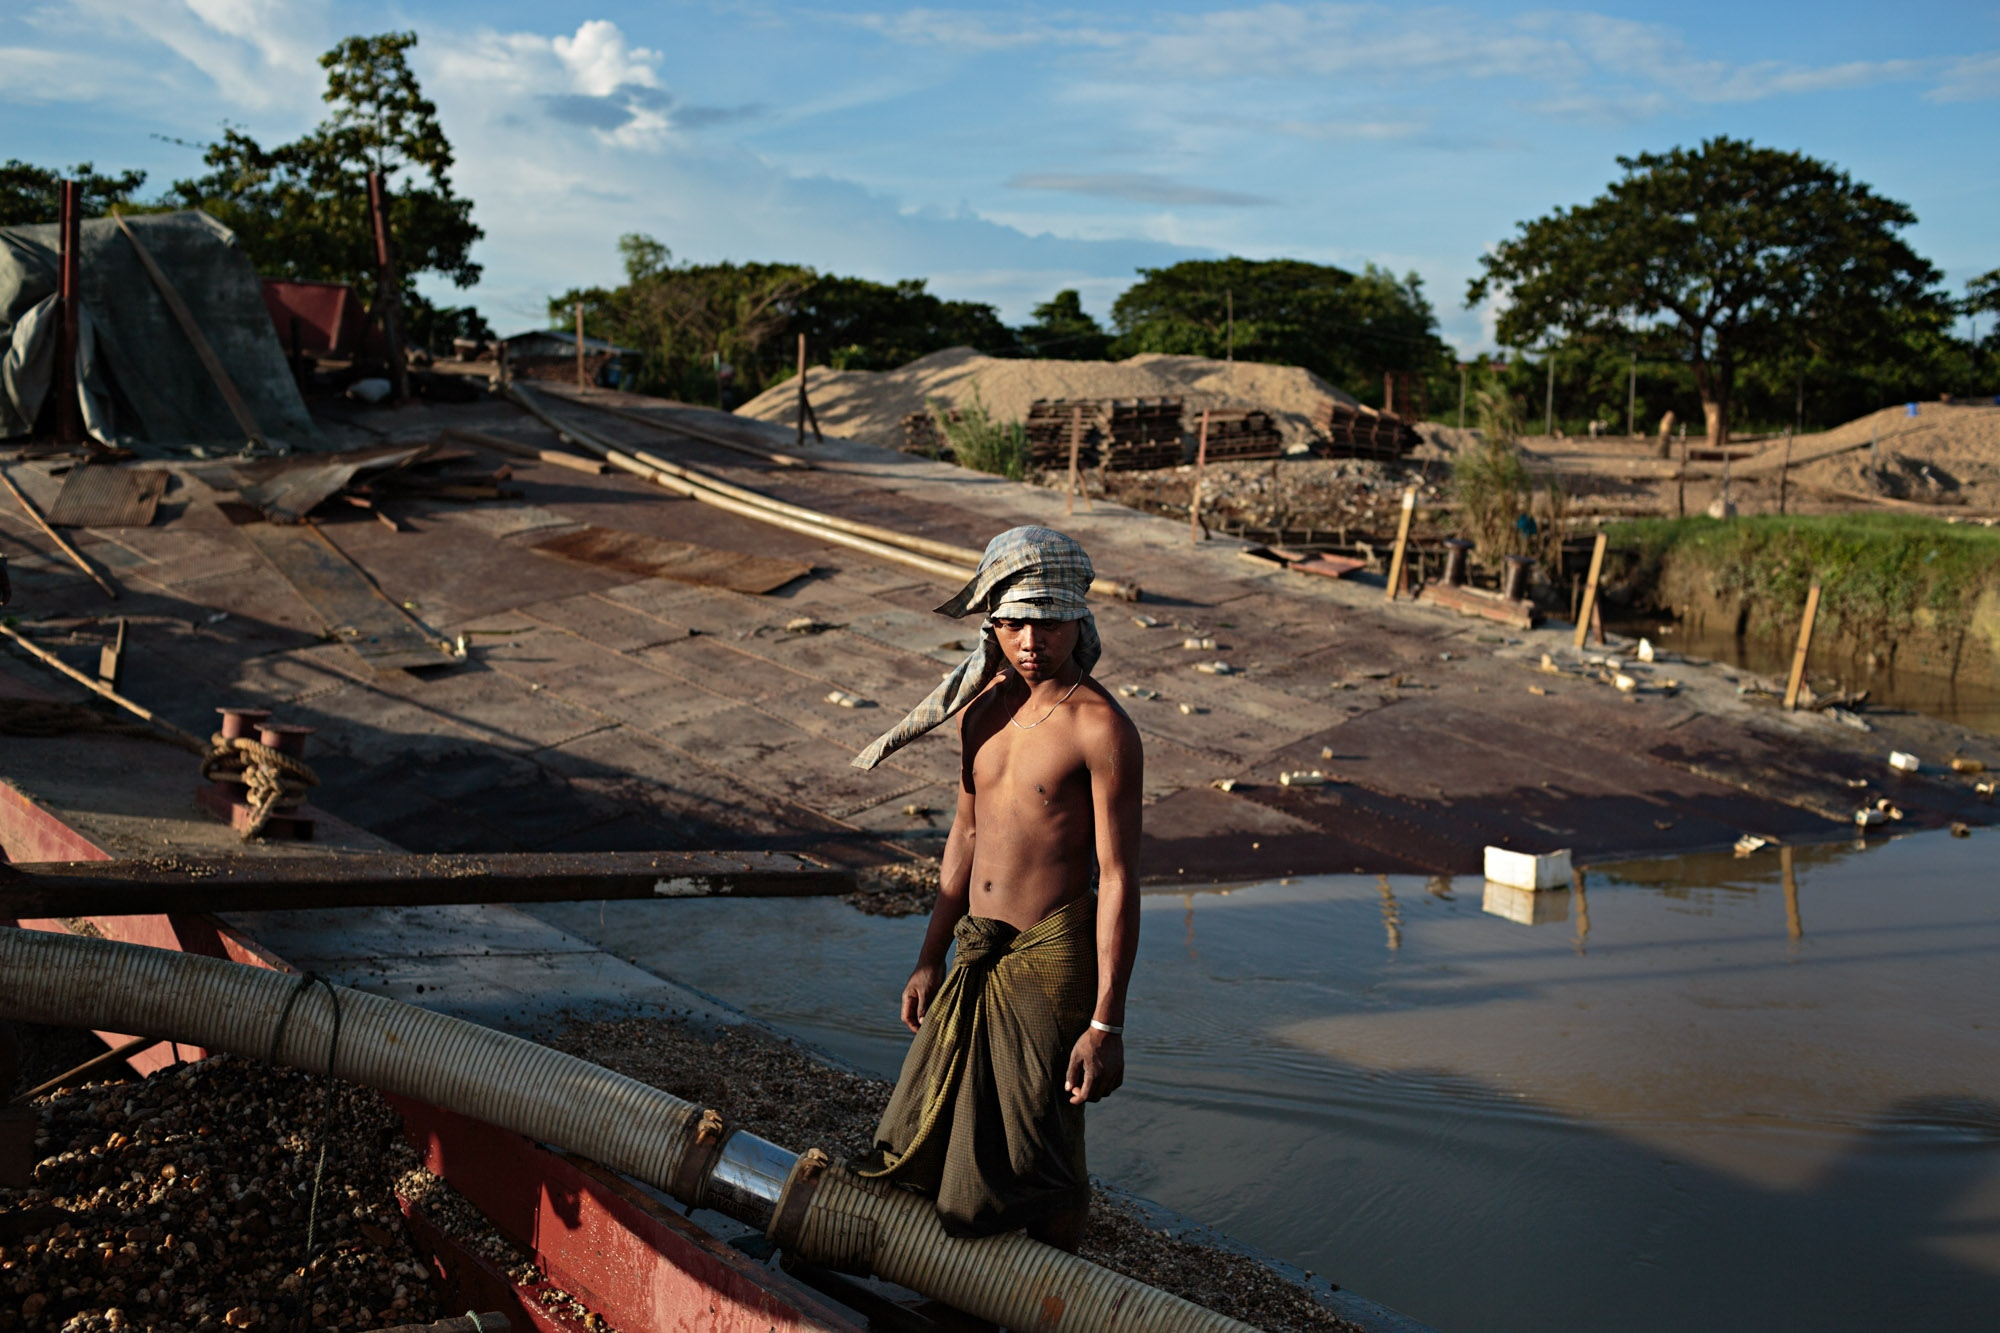 A young man pauses for a moment while working on a dredging boat.